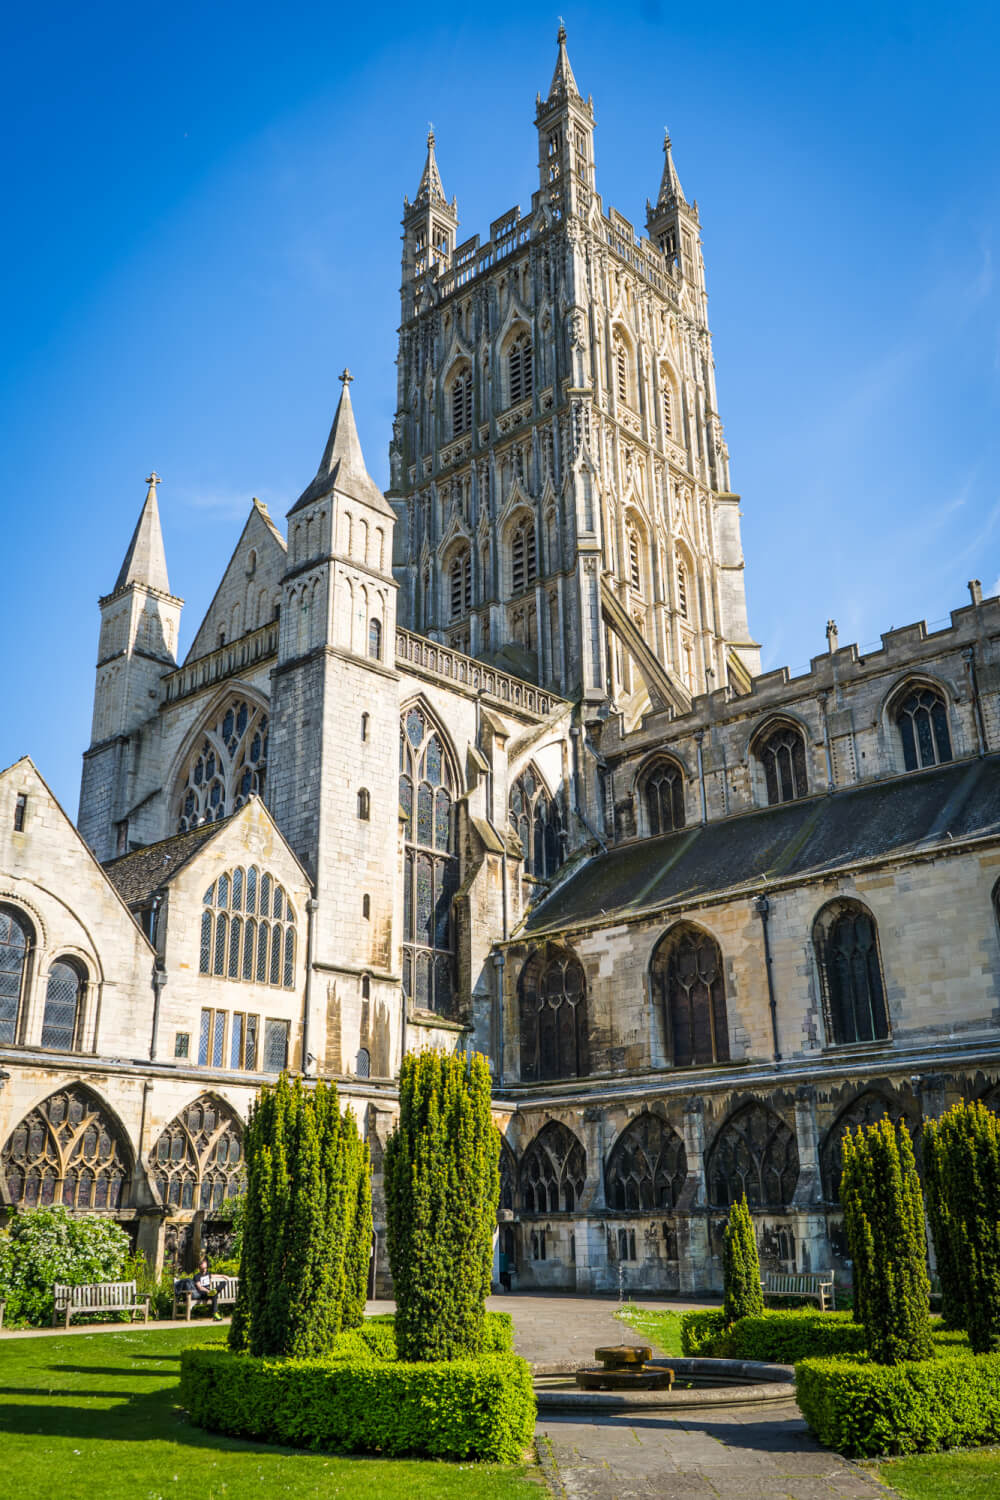 Gloucester Cathedral in Gloucester, Gloucestershire, England